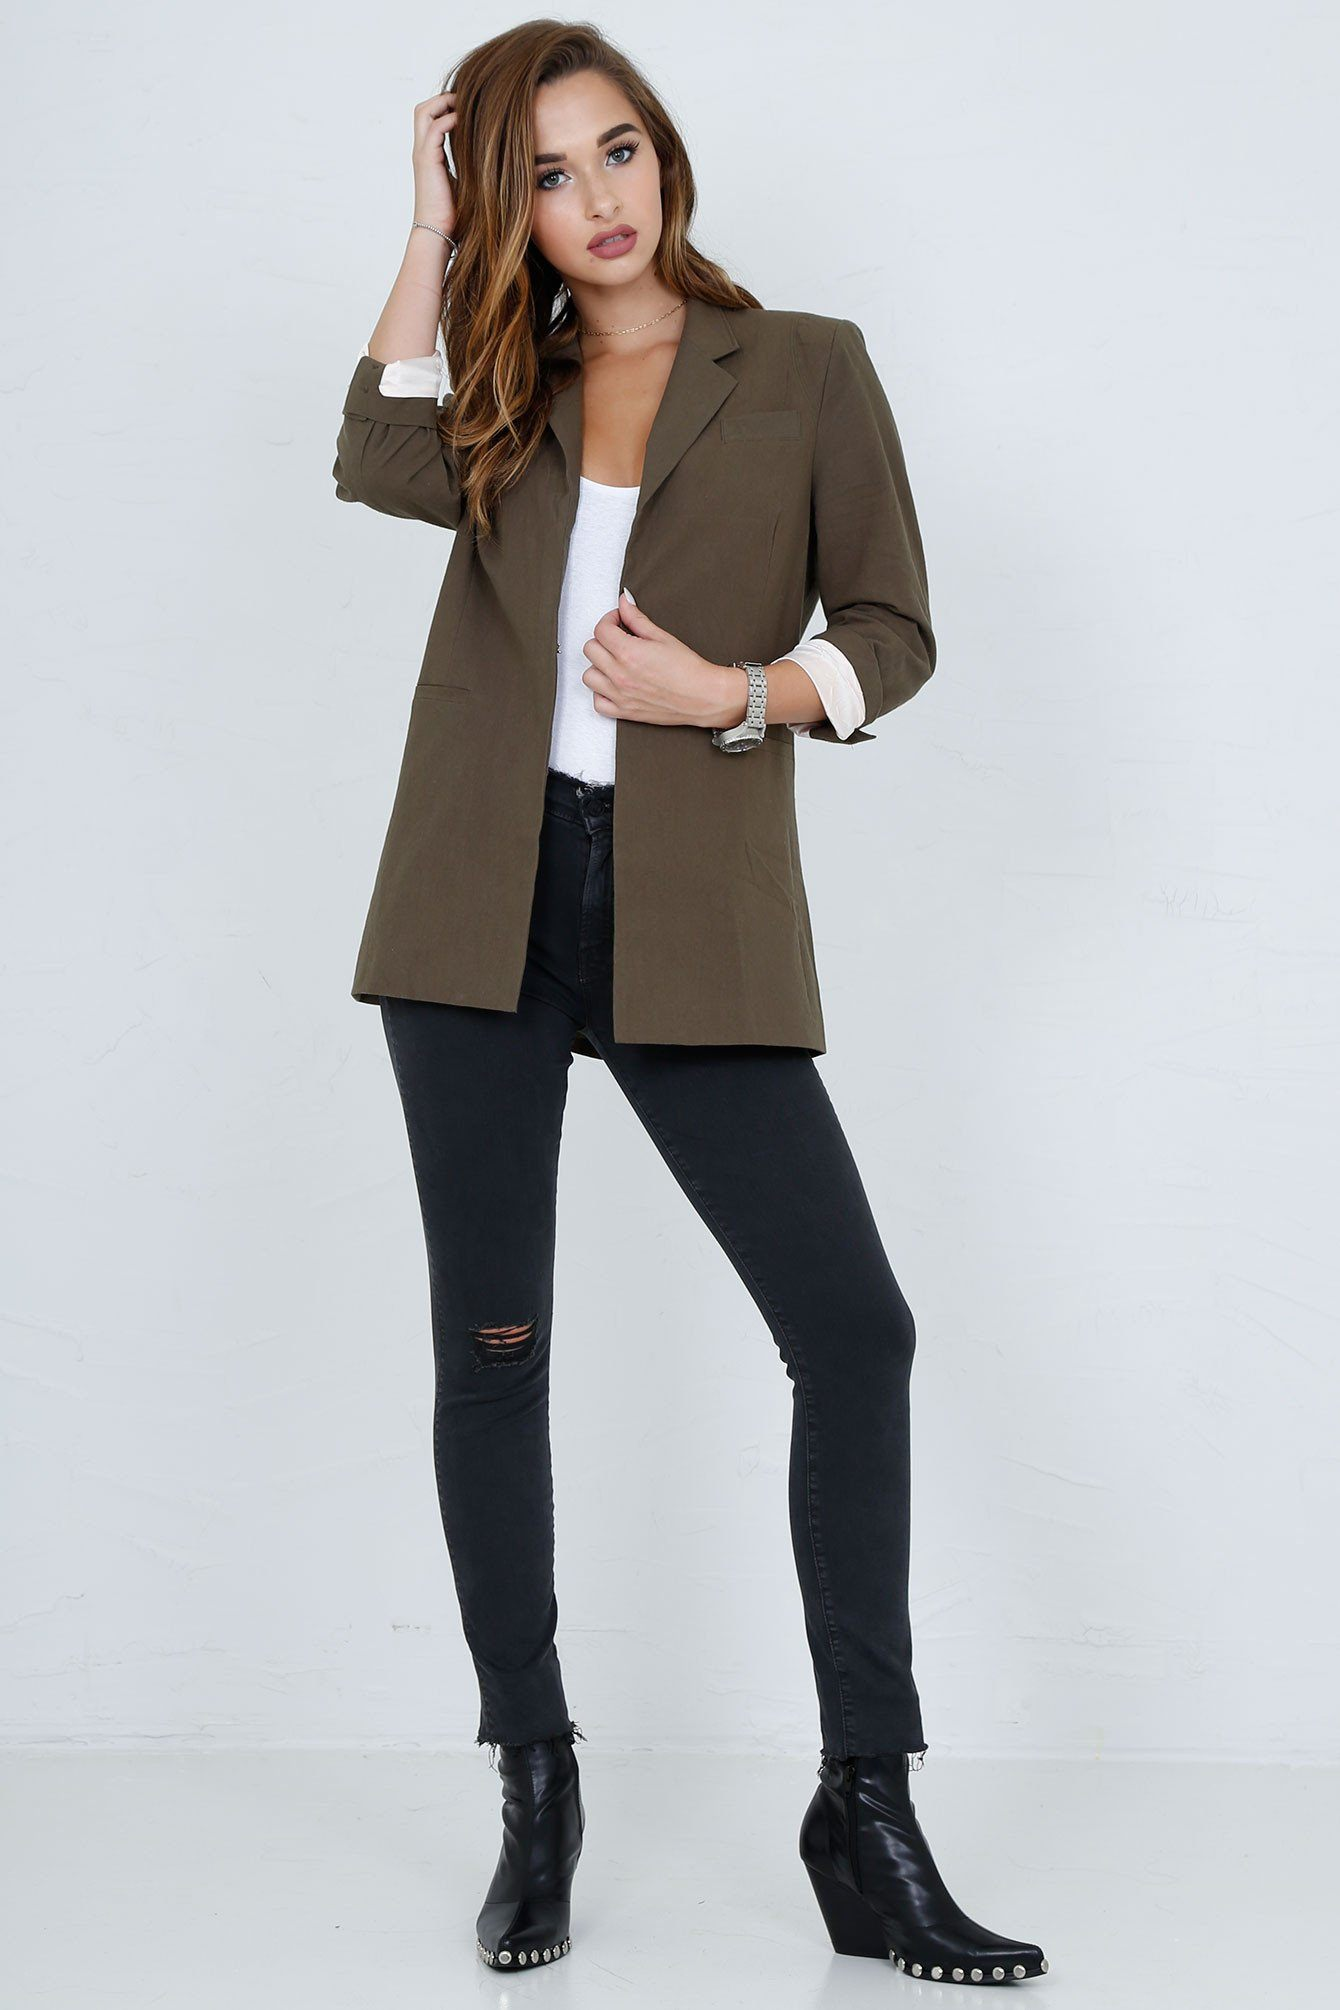 SCARLET | Perfect Blazer in Army - Scarlet Clothing  - 11